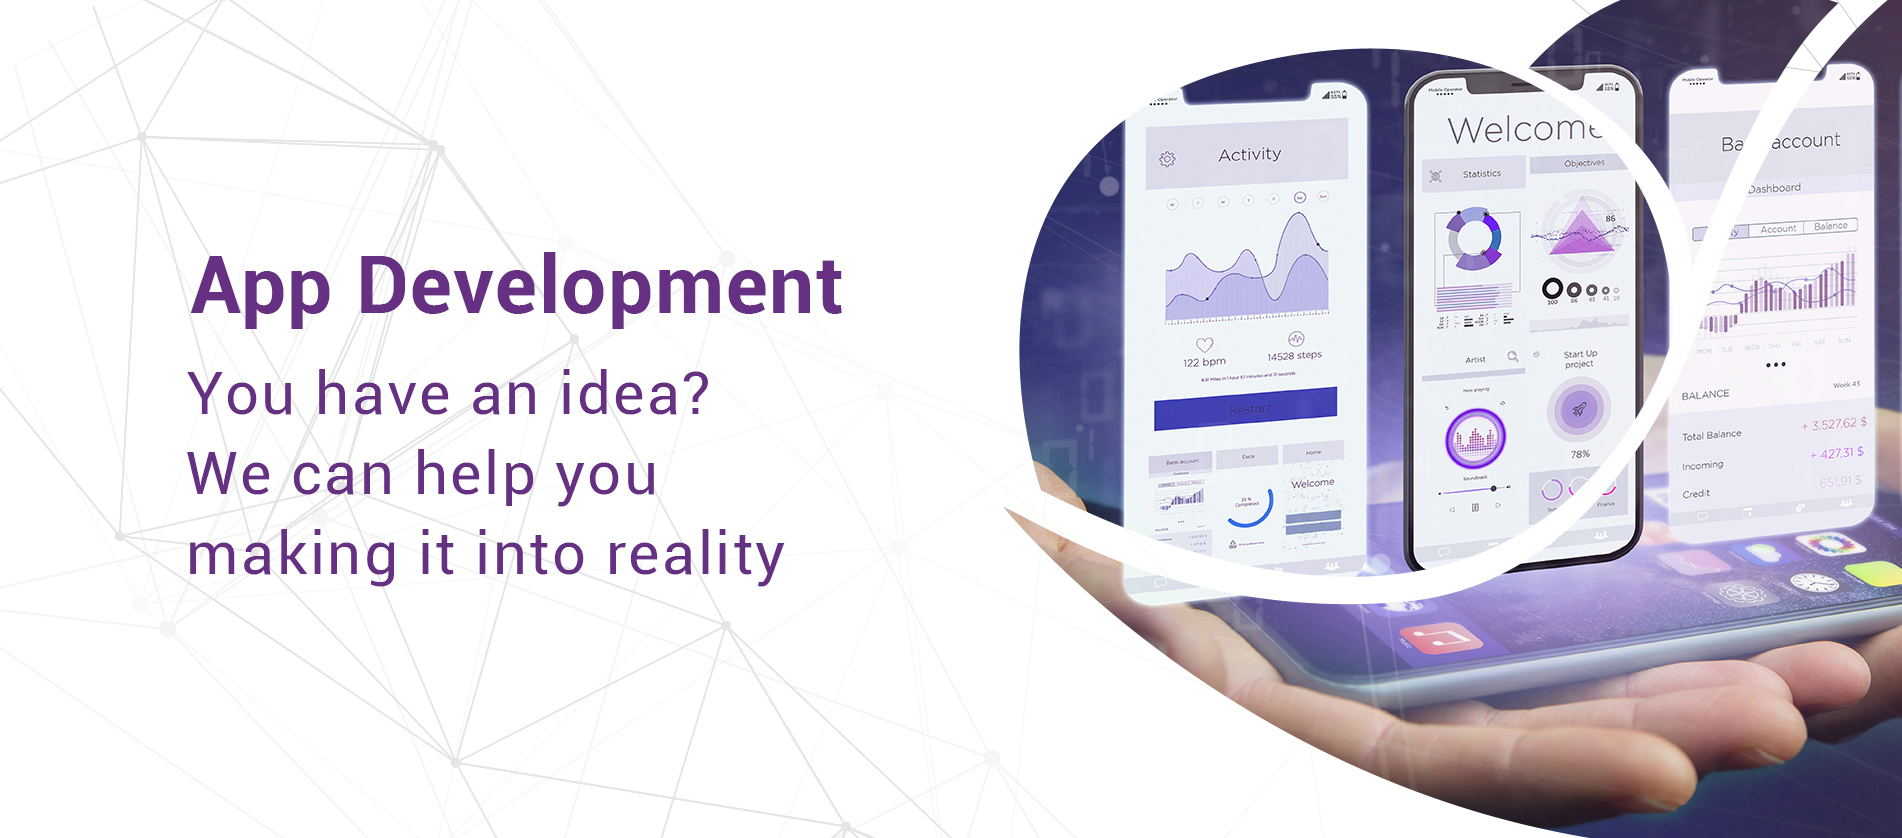 app-development-new